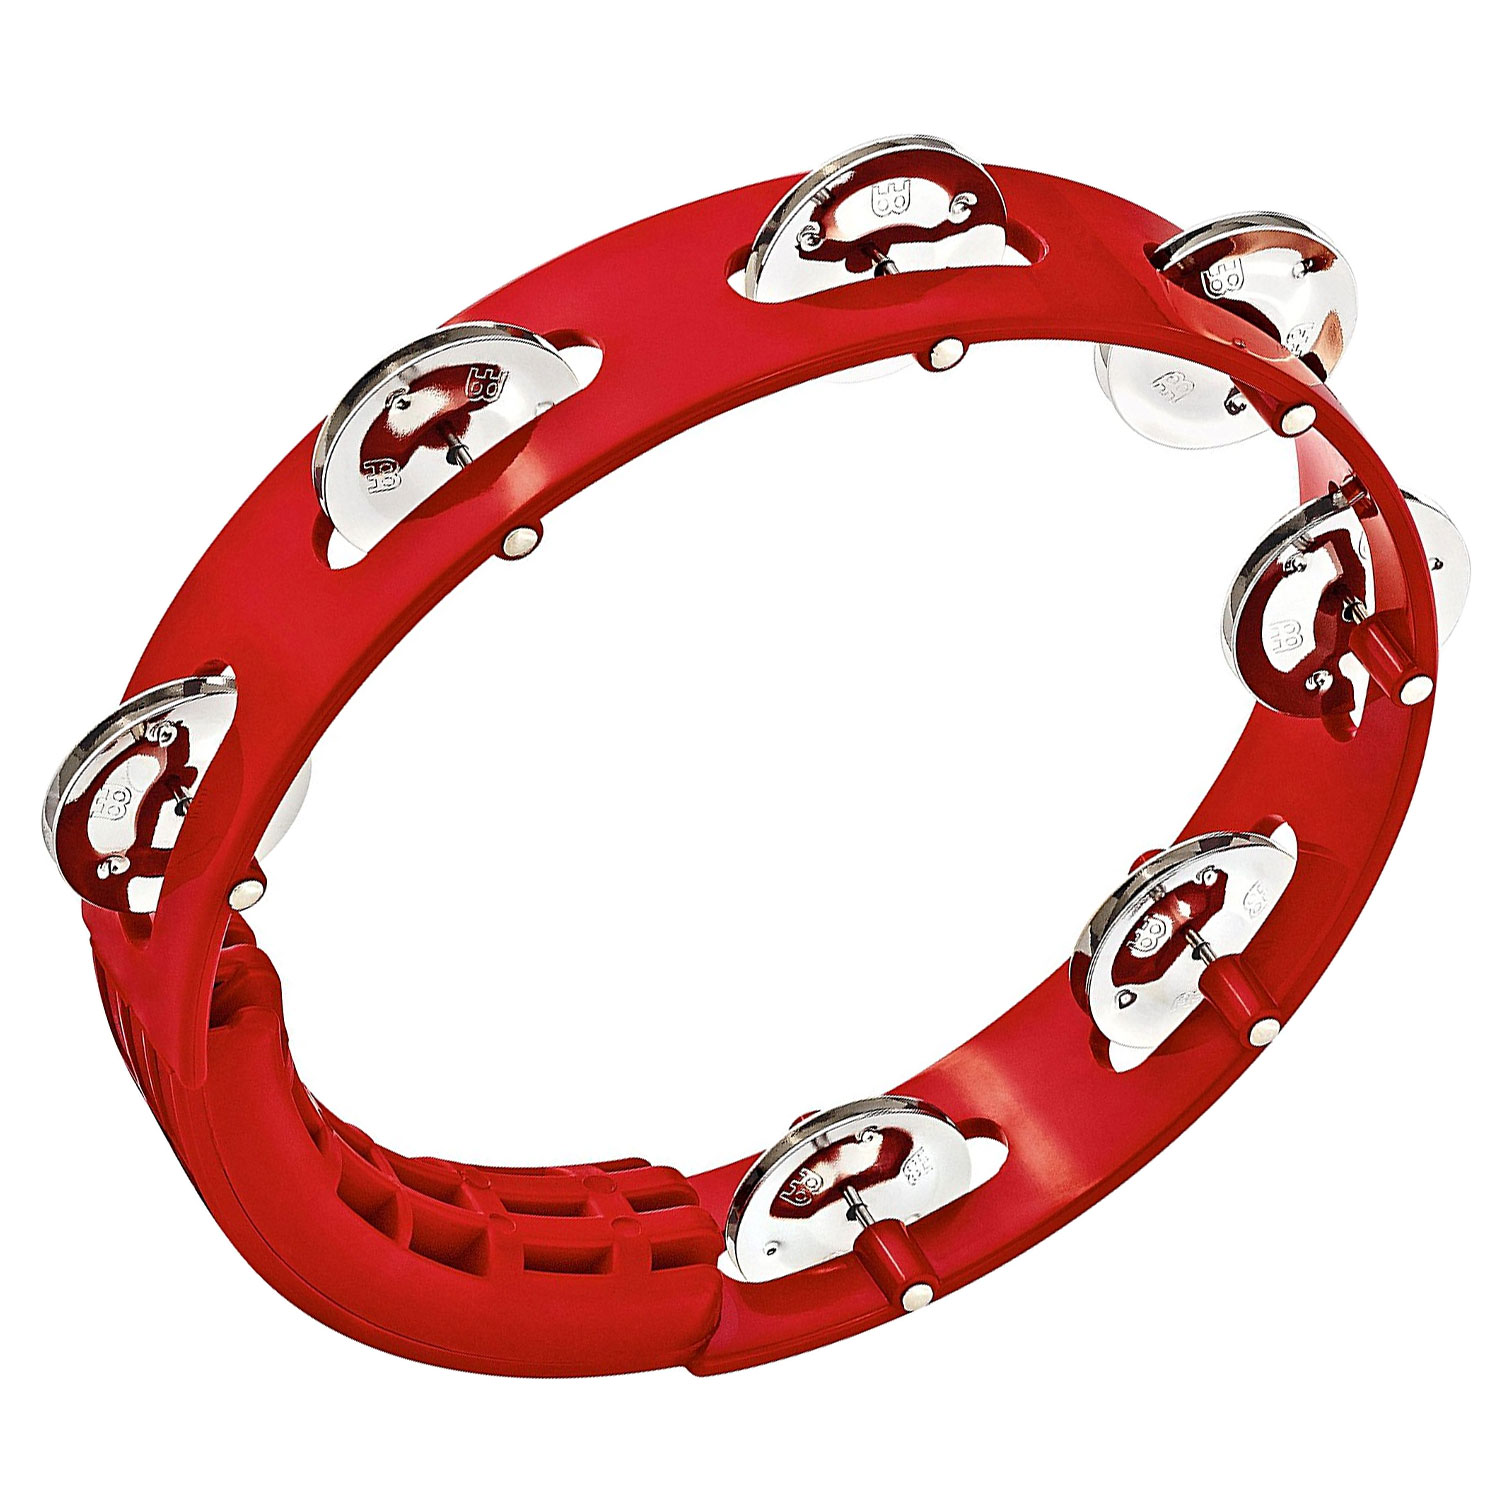 """Meinl 8"""" Red Single-Row Tour Tambourine with Steel Jingles"""